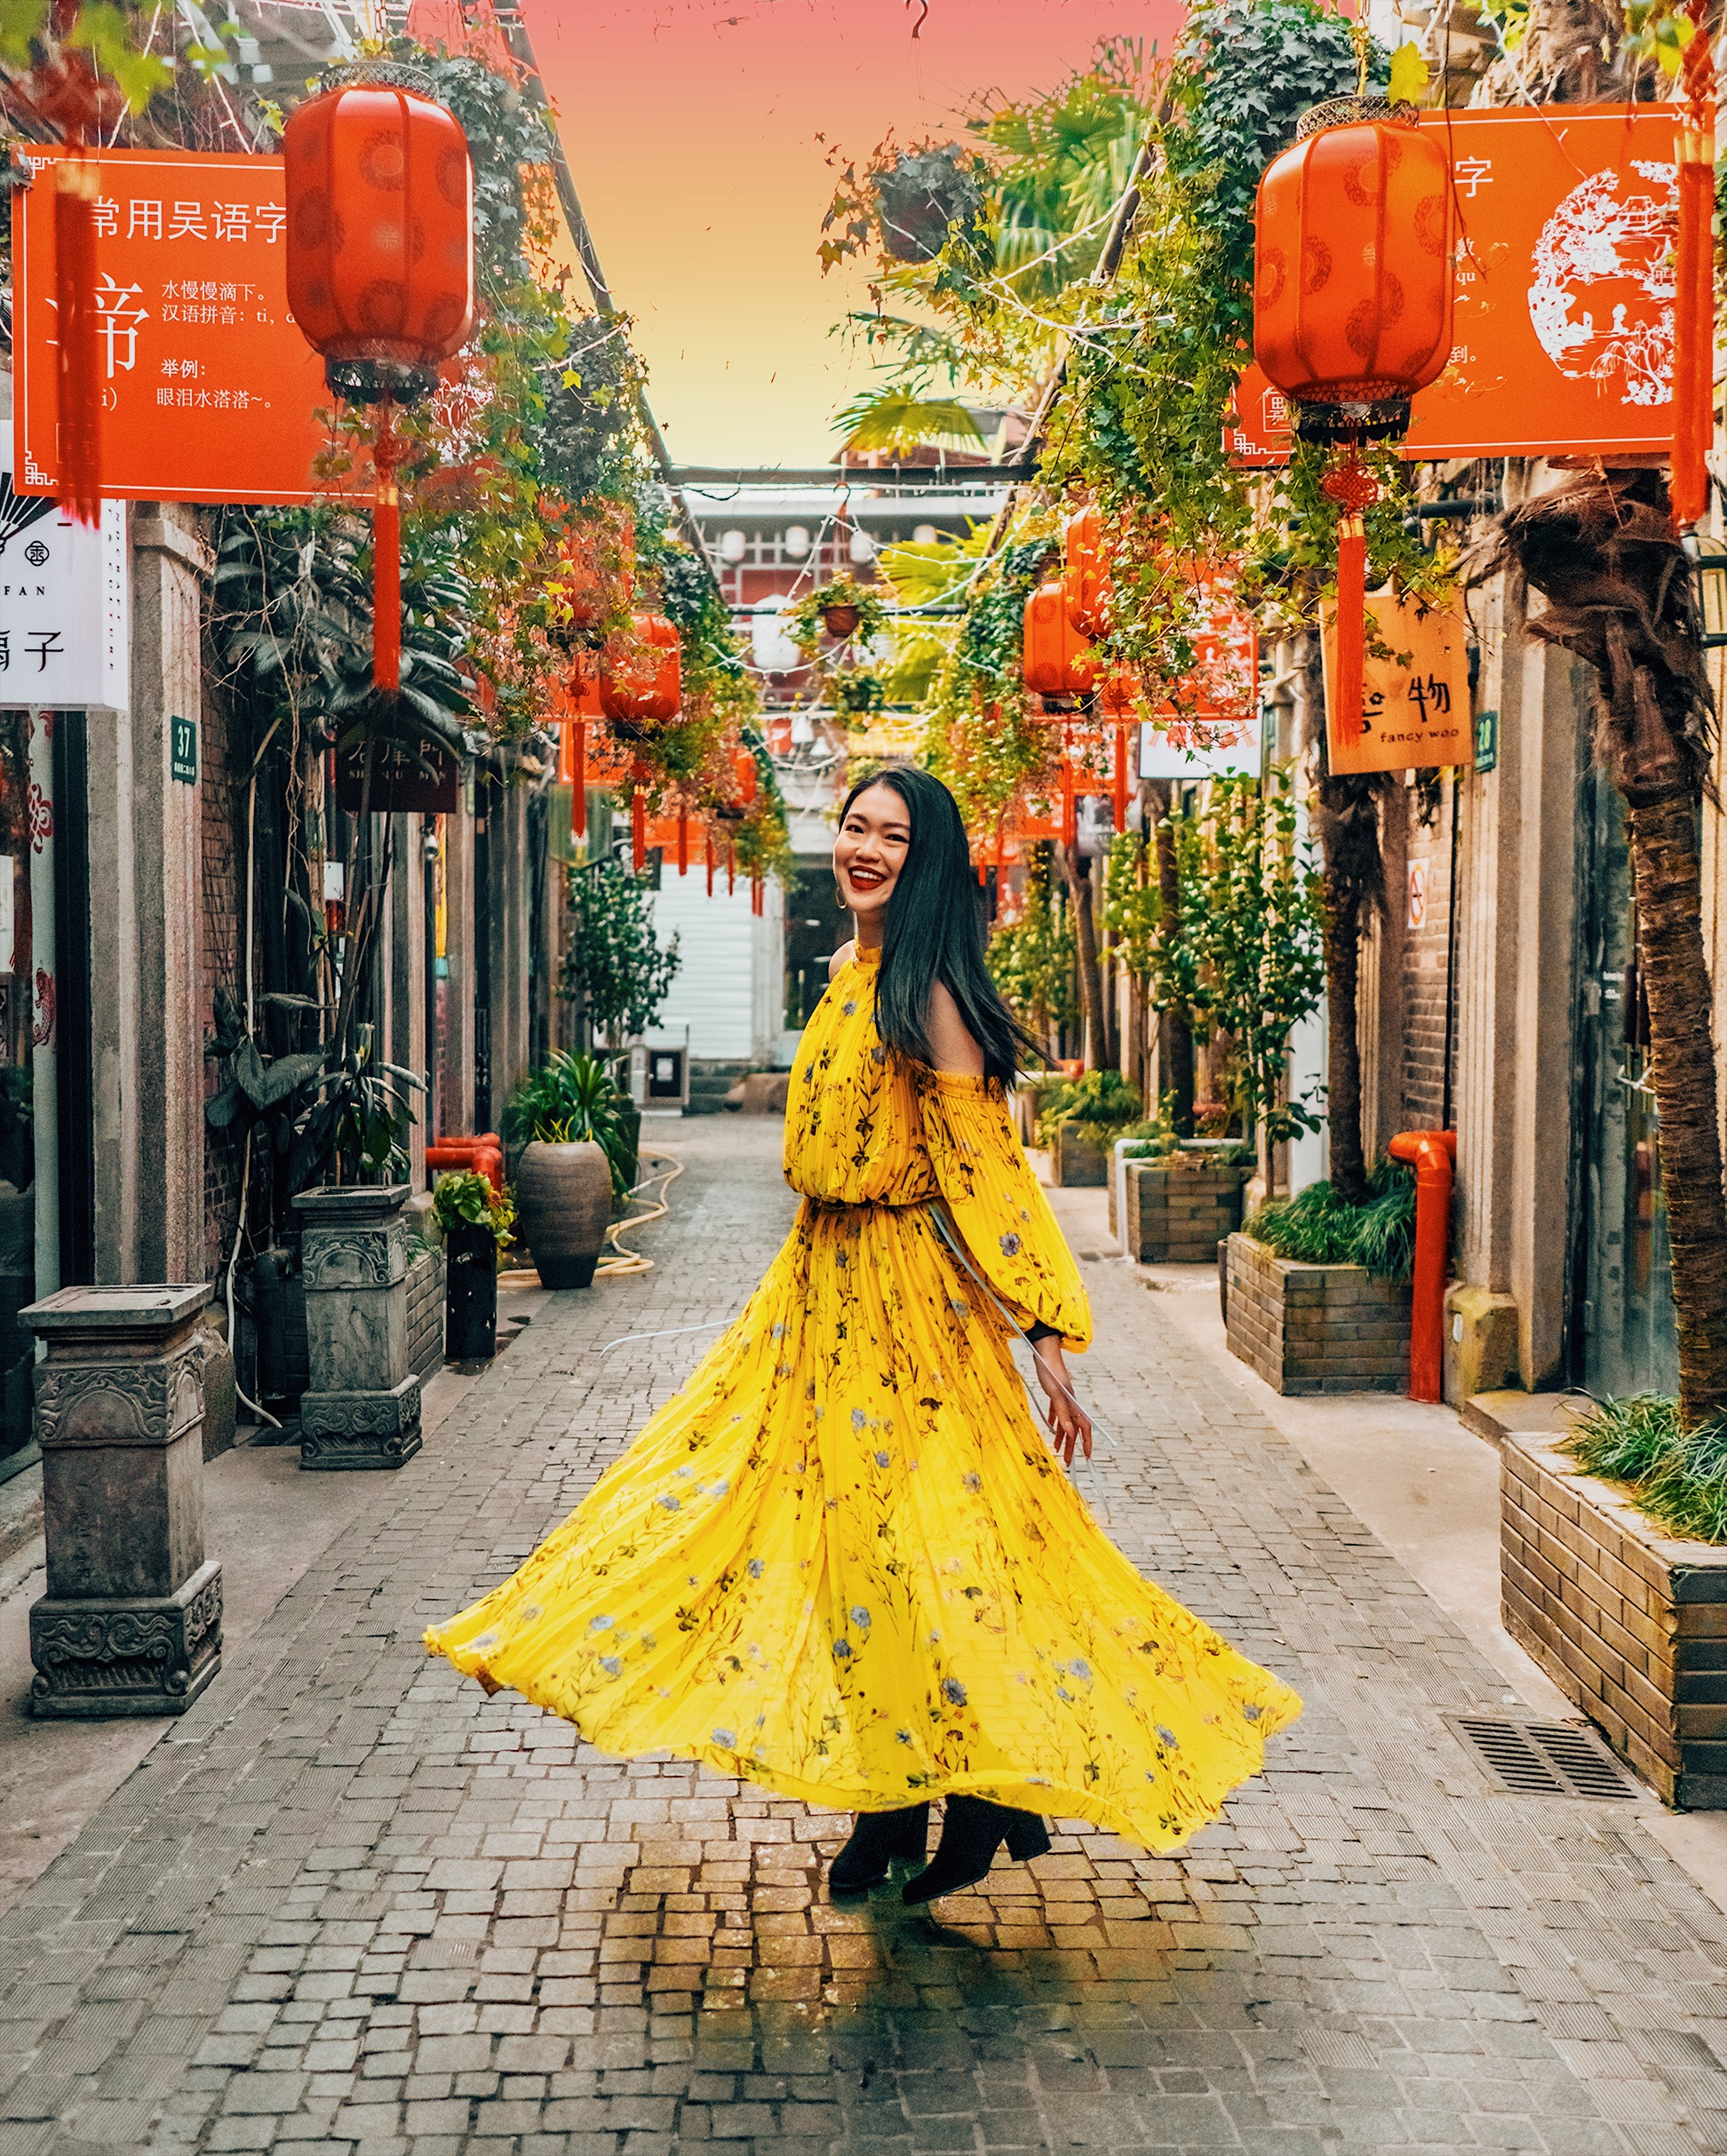 Twirling under the iconic Chinese red lanterns of Tianzifang.